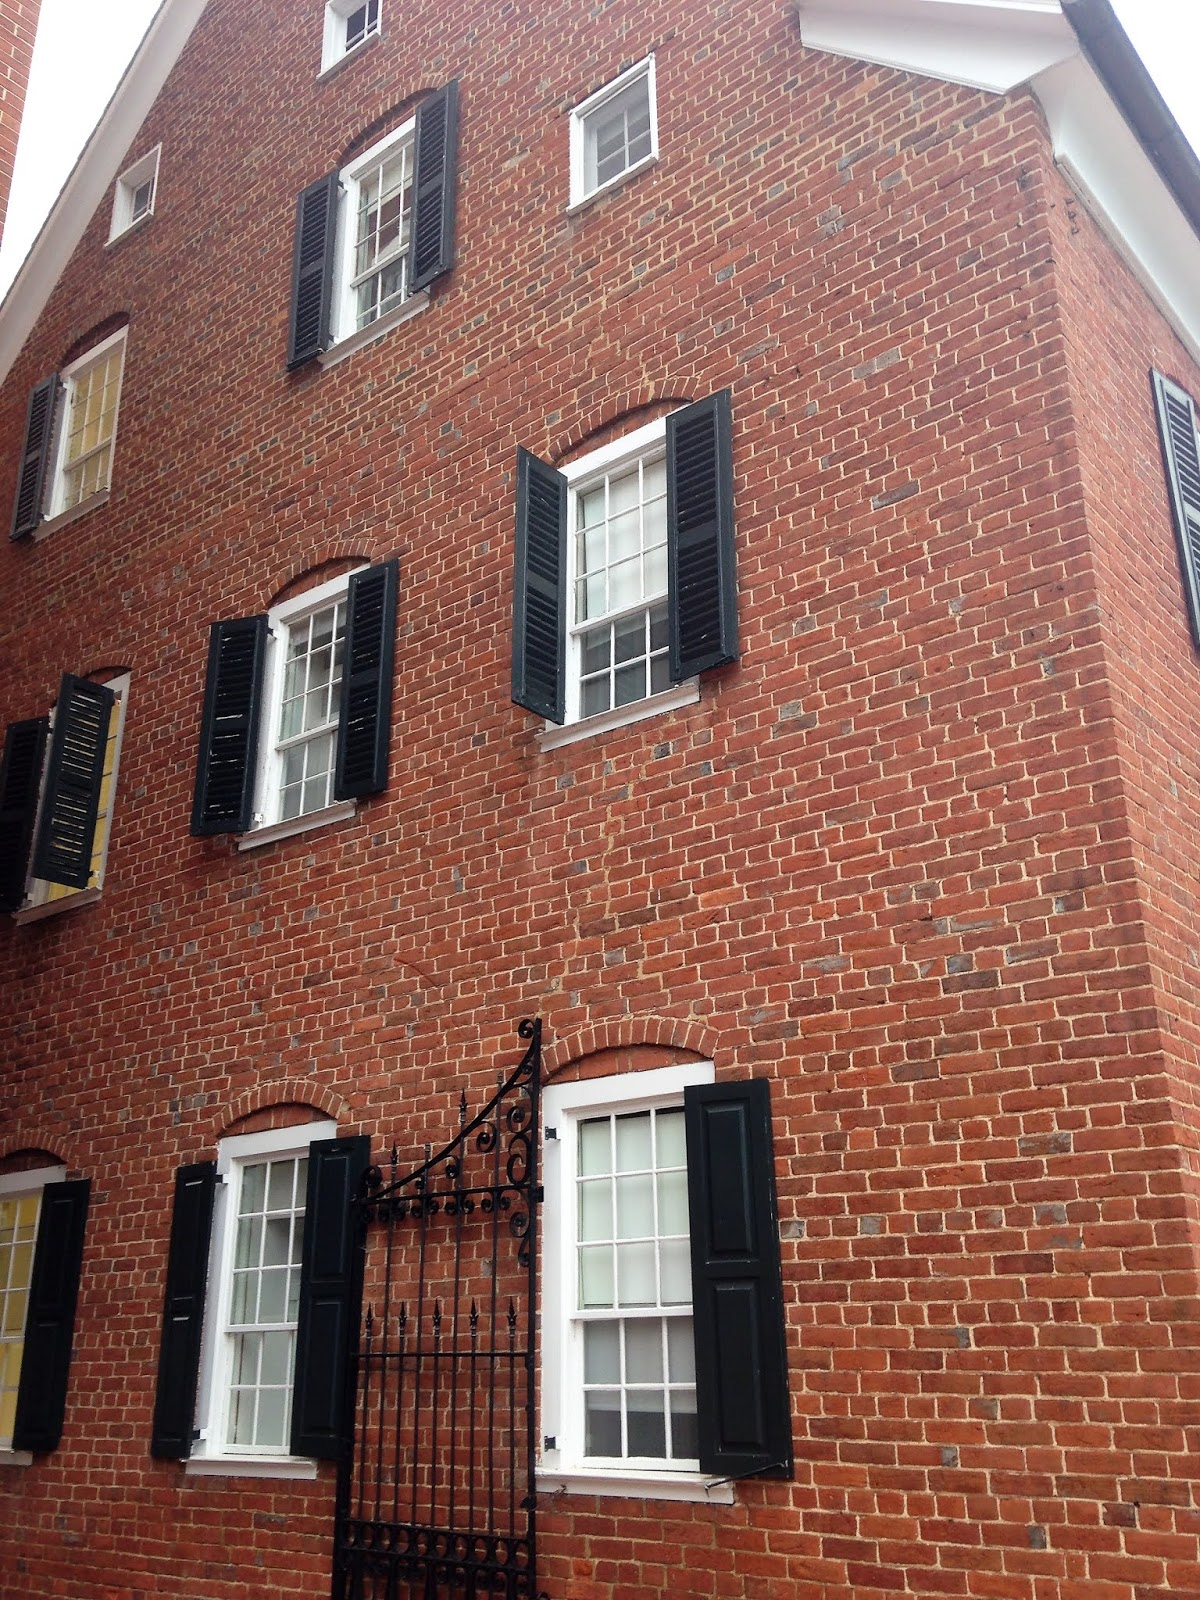 Heroes, Heroines, and History: The Moravian Town of Salem